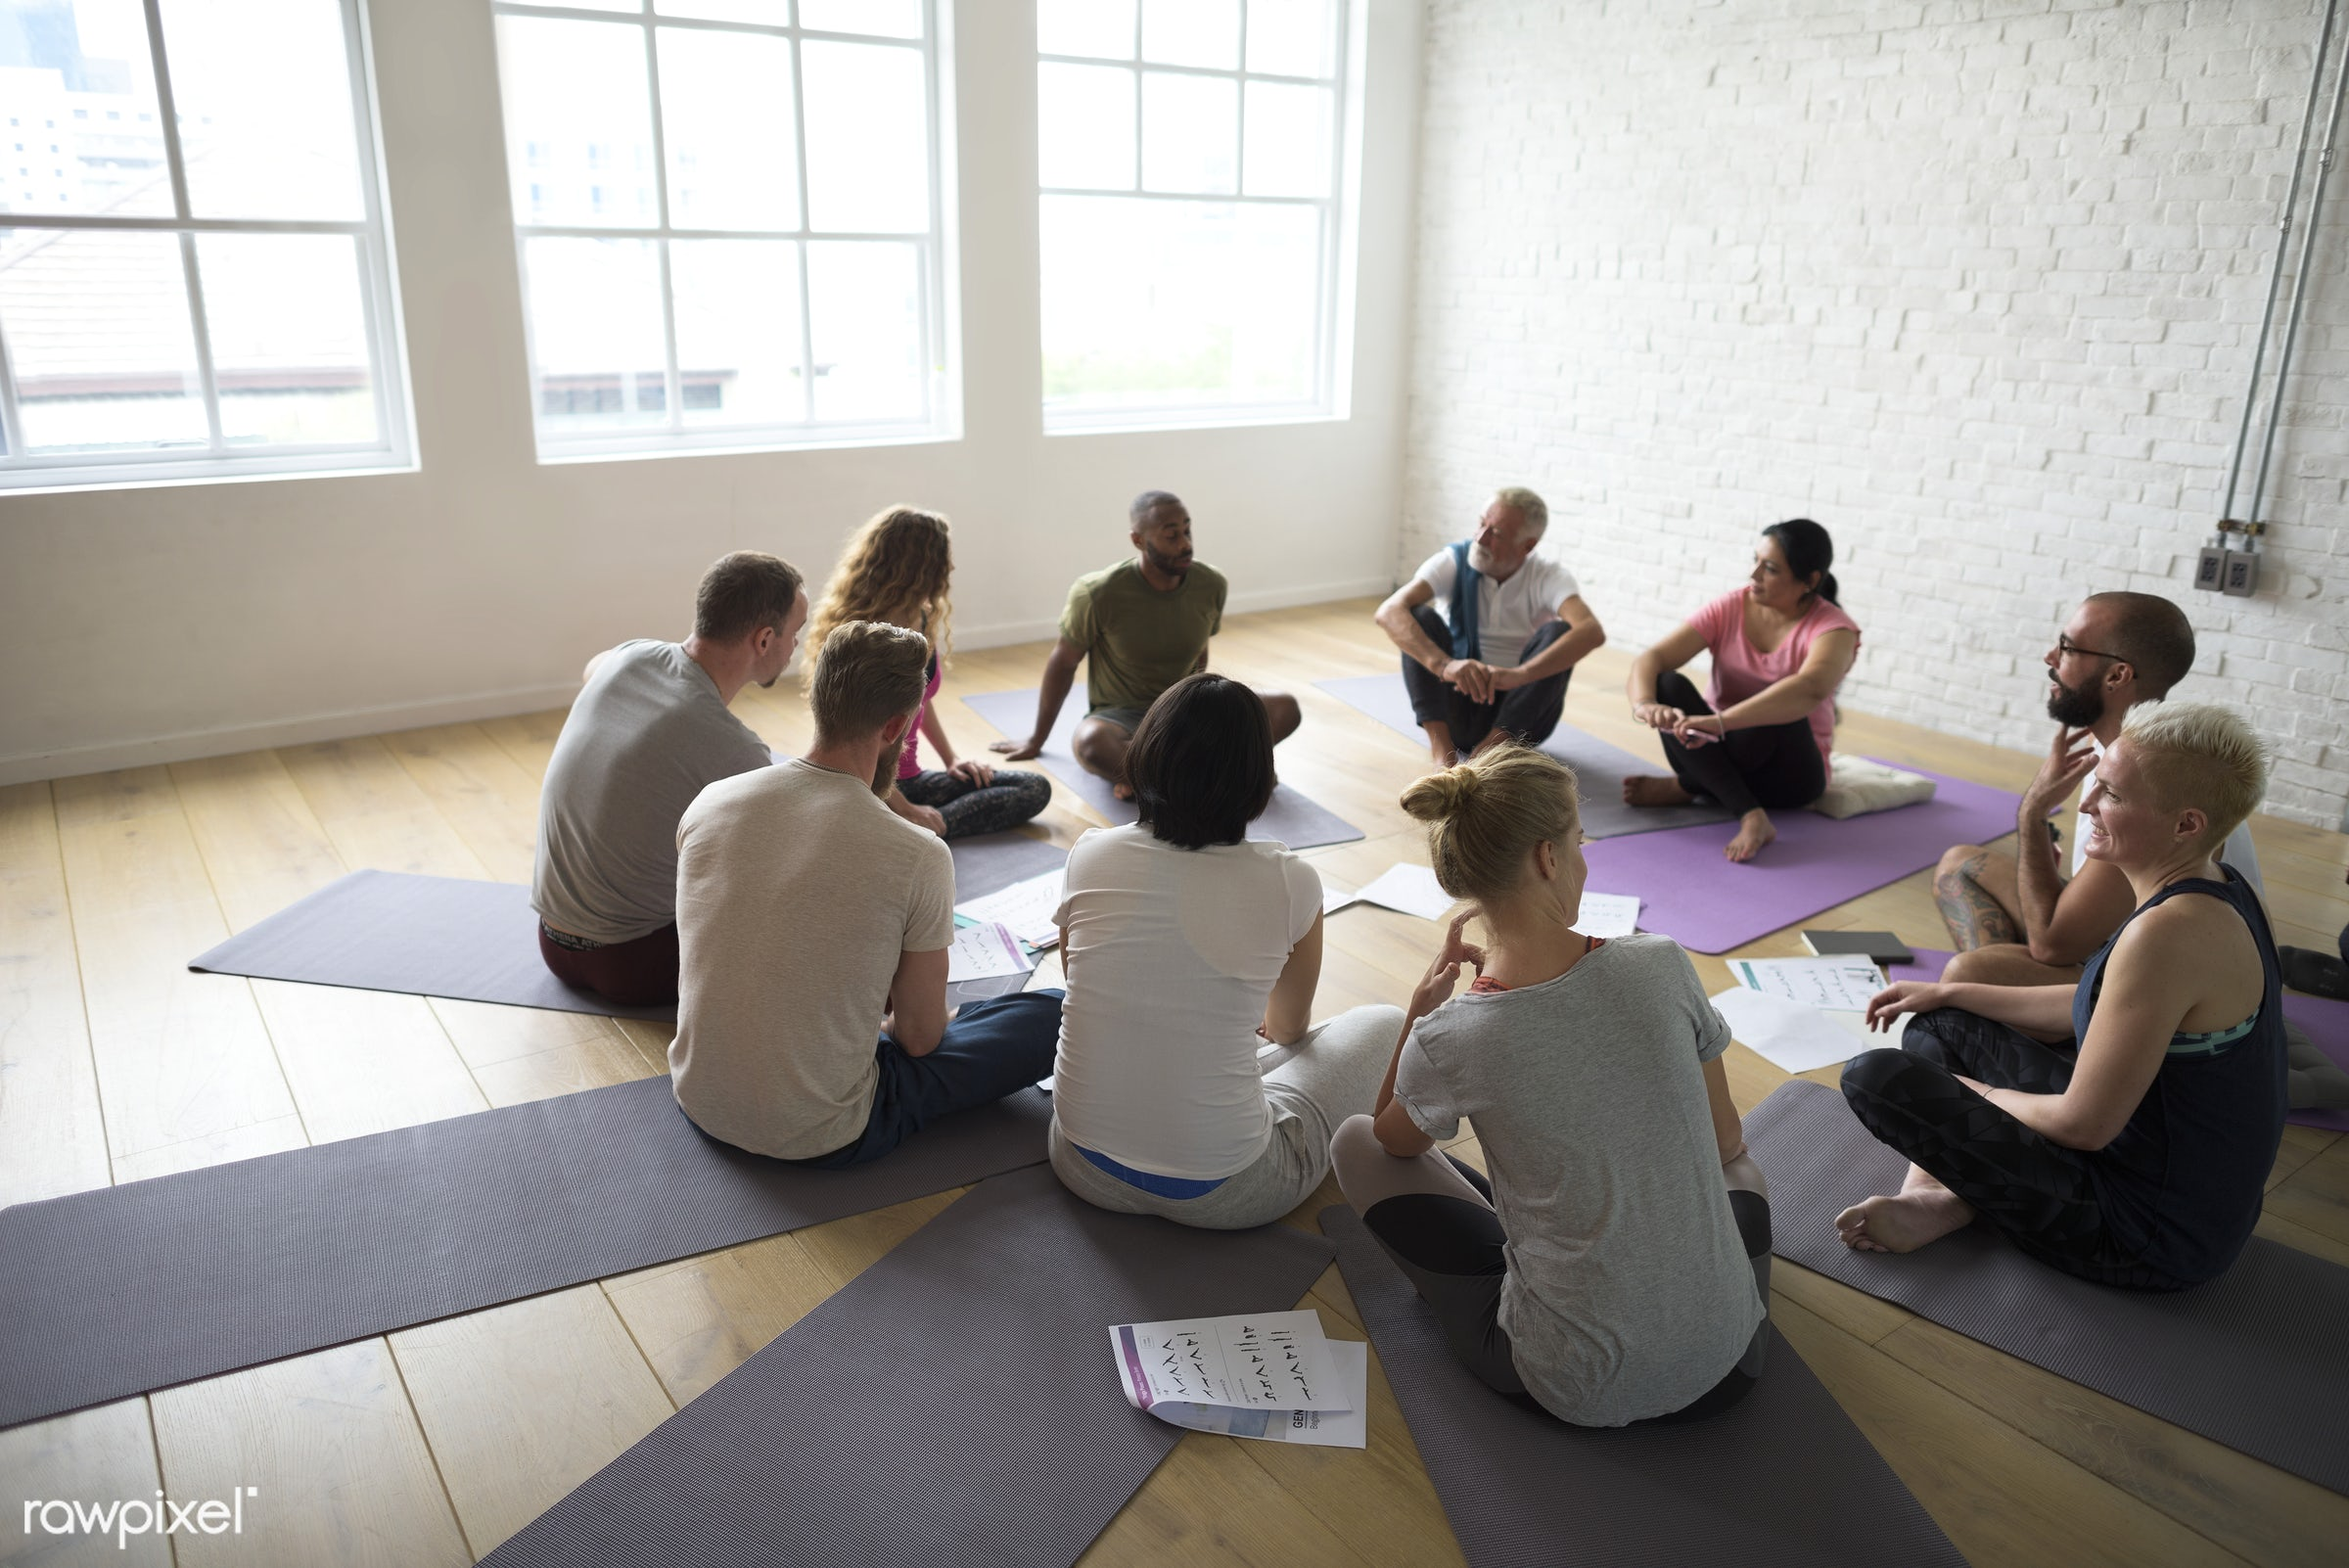 Yoga class concept  - respiration, physical, diverse, relax, recreation, people, stretching, together, balance, practicing,...